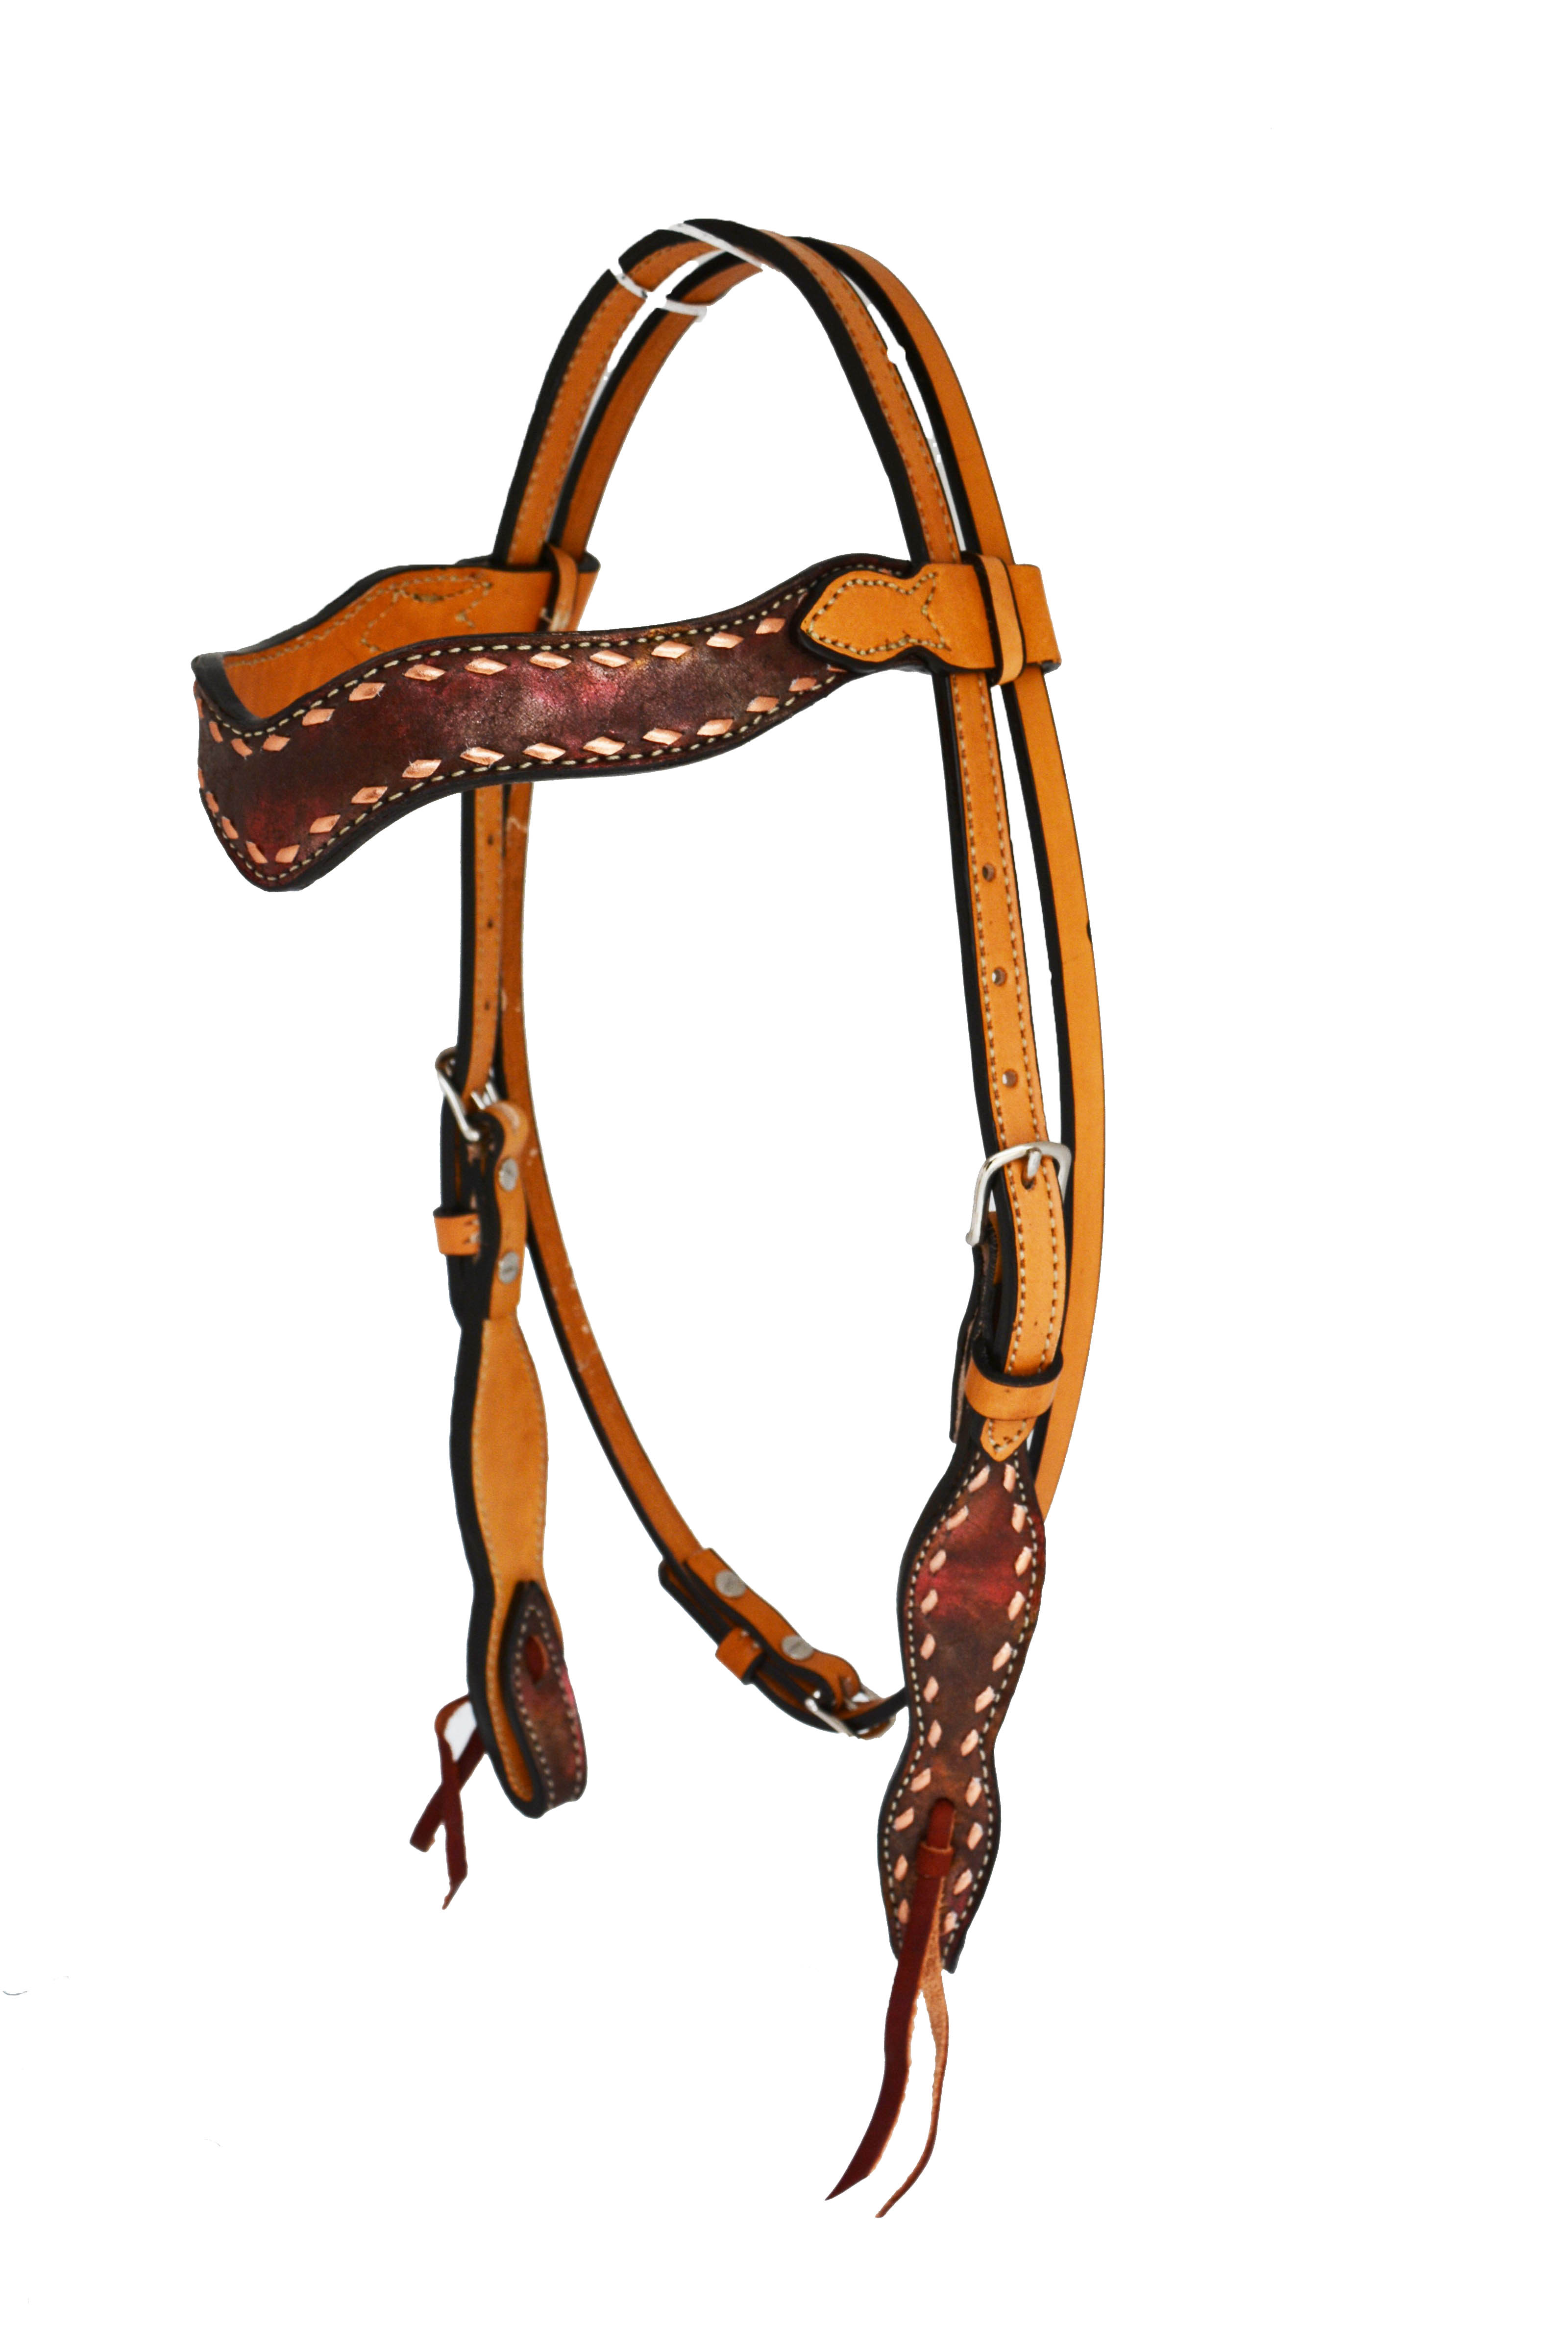 2117-CCM SLEEK WAVE STYLE HEADSTALL W COPPER MARBLE OVERLAY & BUCKSTITCH